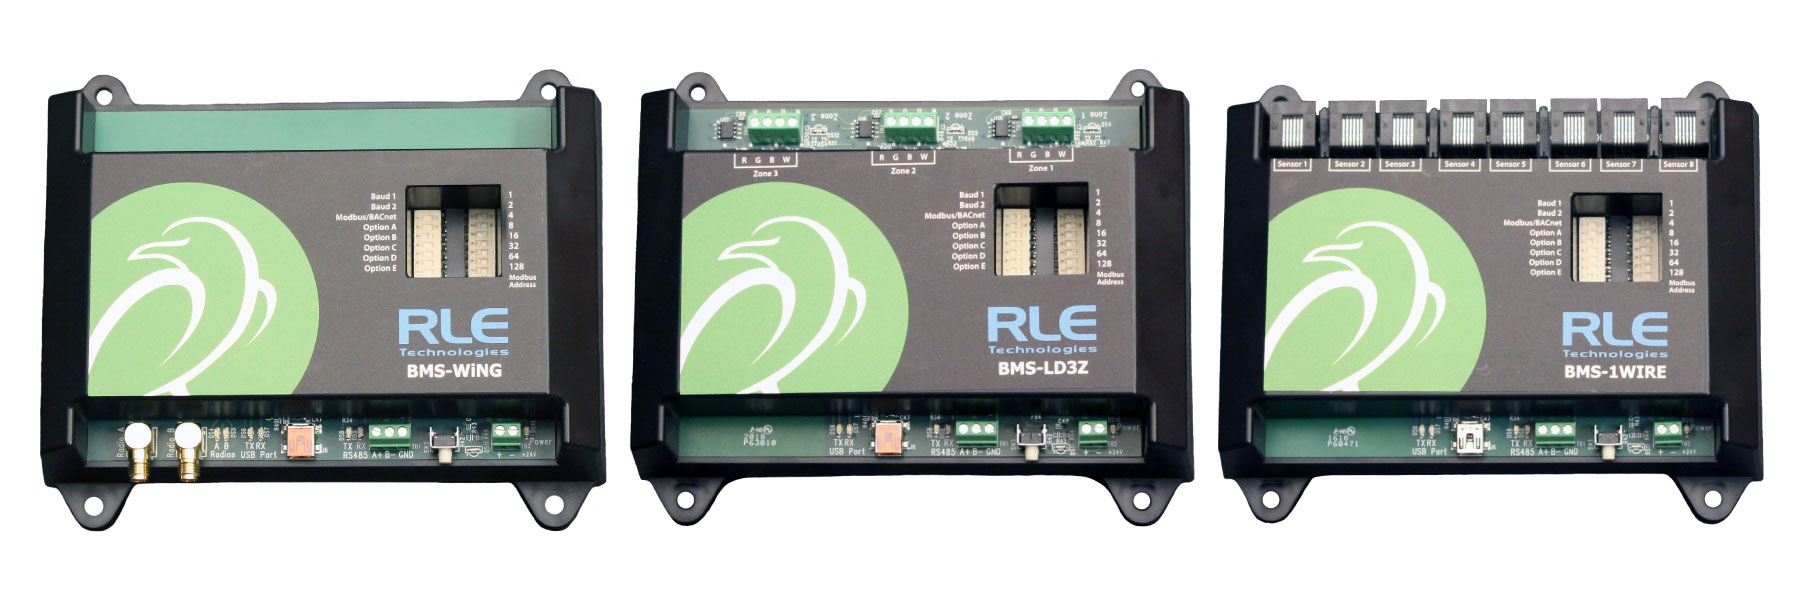 RLE Technologies Facility Monitoring with Seamless BMS Integration